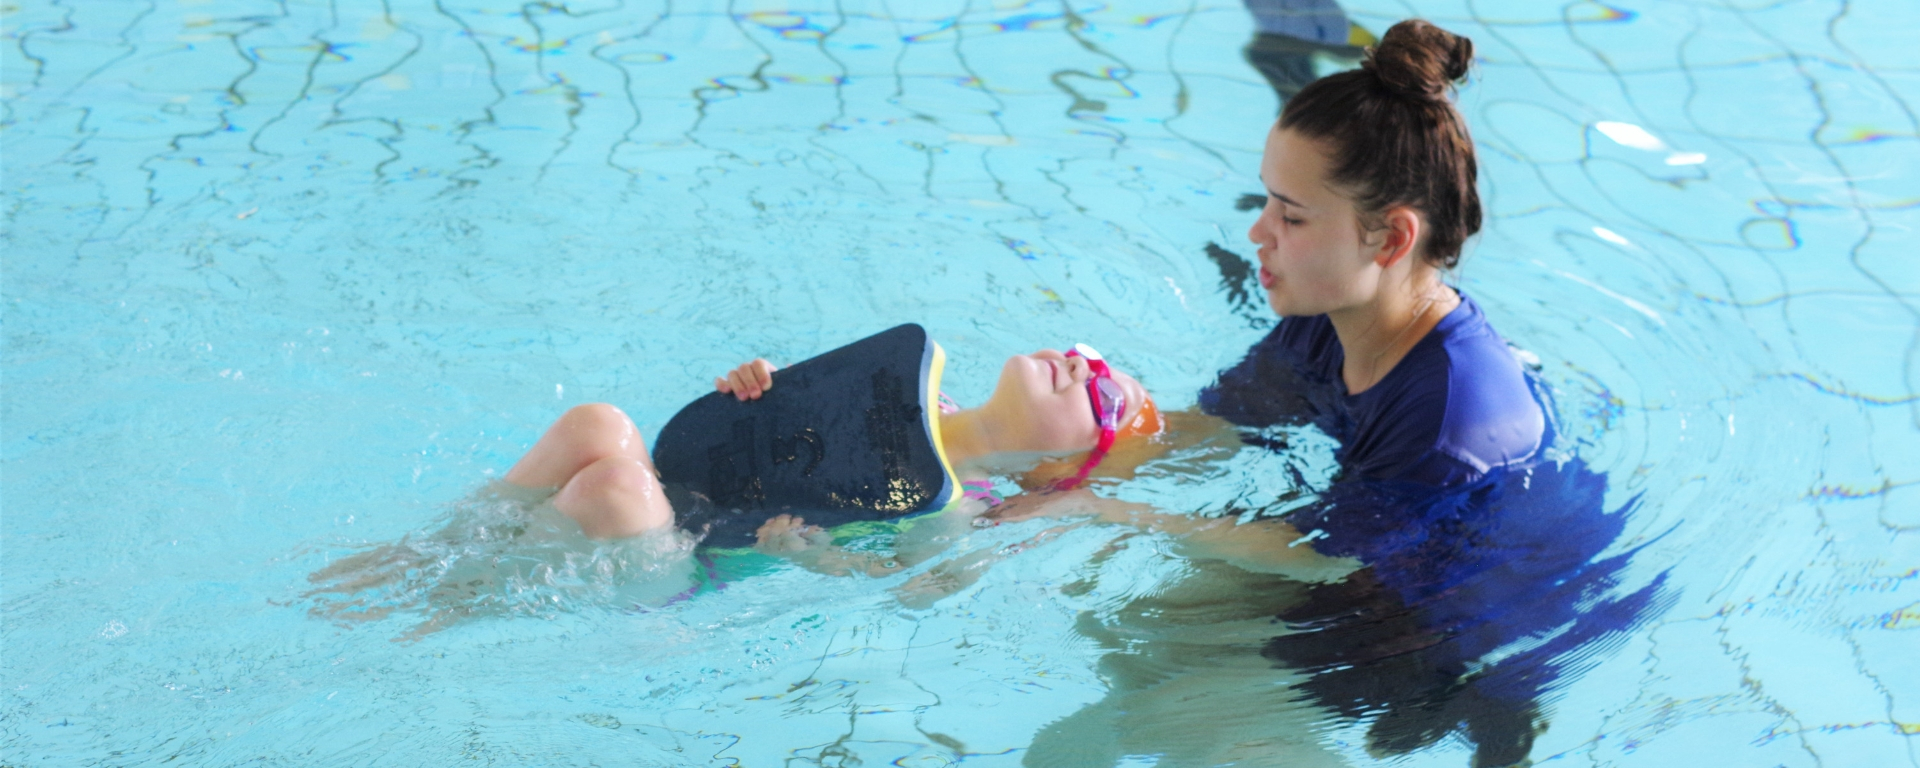 Local girls qualify as Wentworth swimming instructors